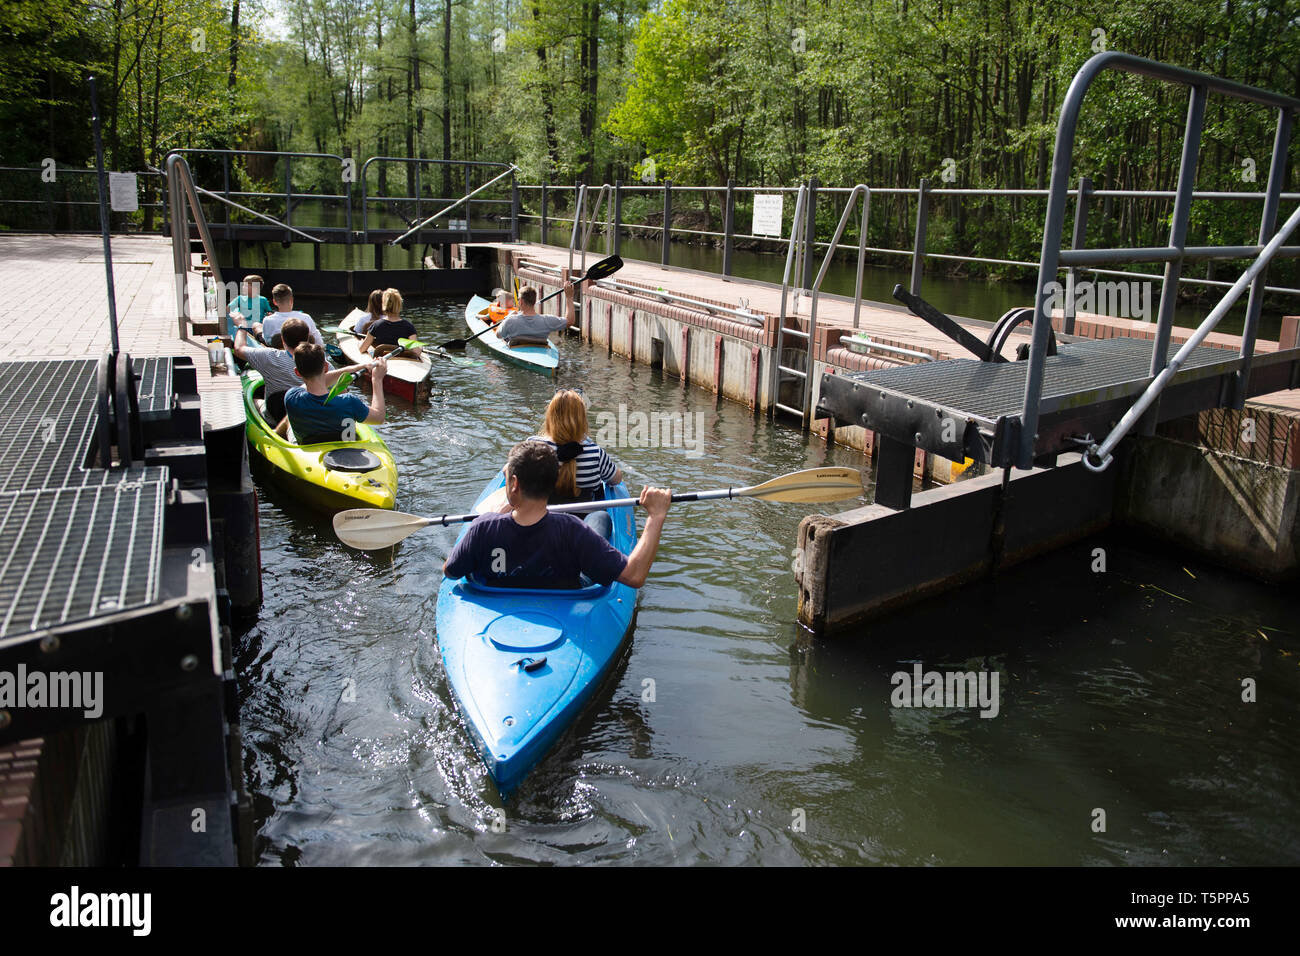 Leipe, Germany. 26th Apr, 2019. Tourists wait in canoes on the main spree in front of a lock. (to dpa 'Lusatia: Successful season opener with many tourists') Credit: Lisa Ducret/dpa/Alamy Live News - Stock Image